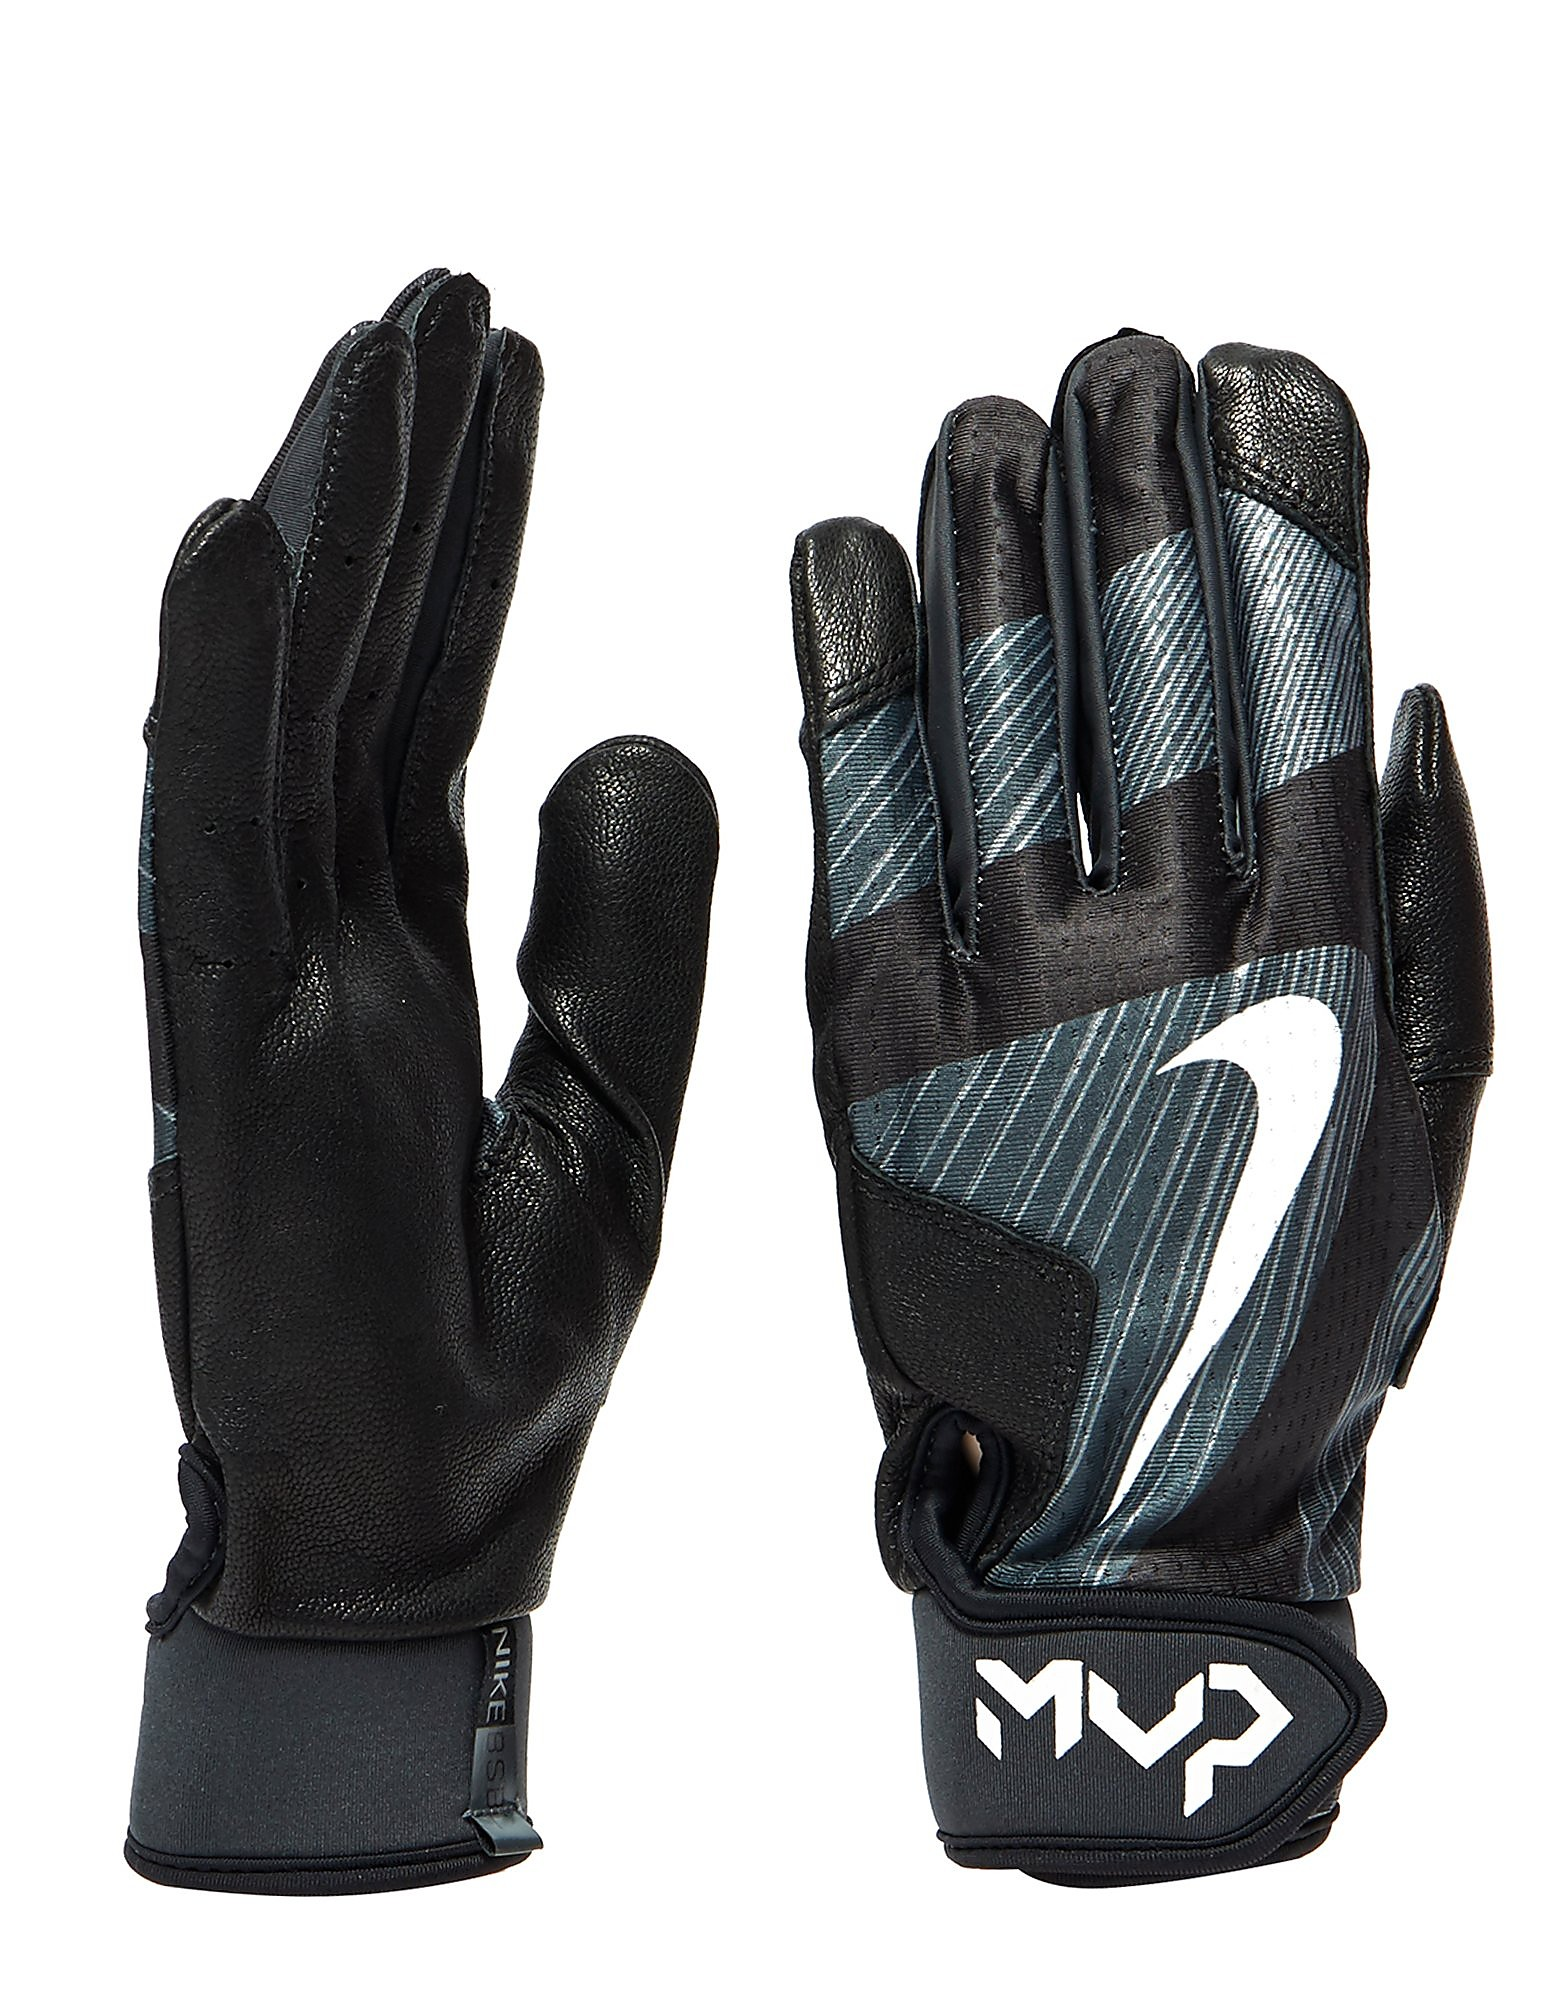 Nike MVP Edge Batting Gloves